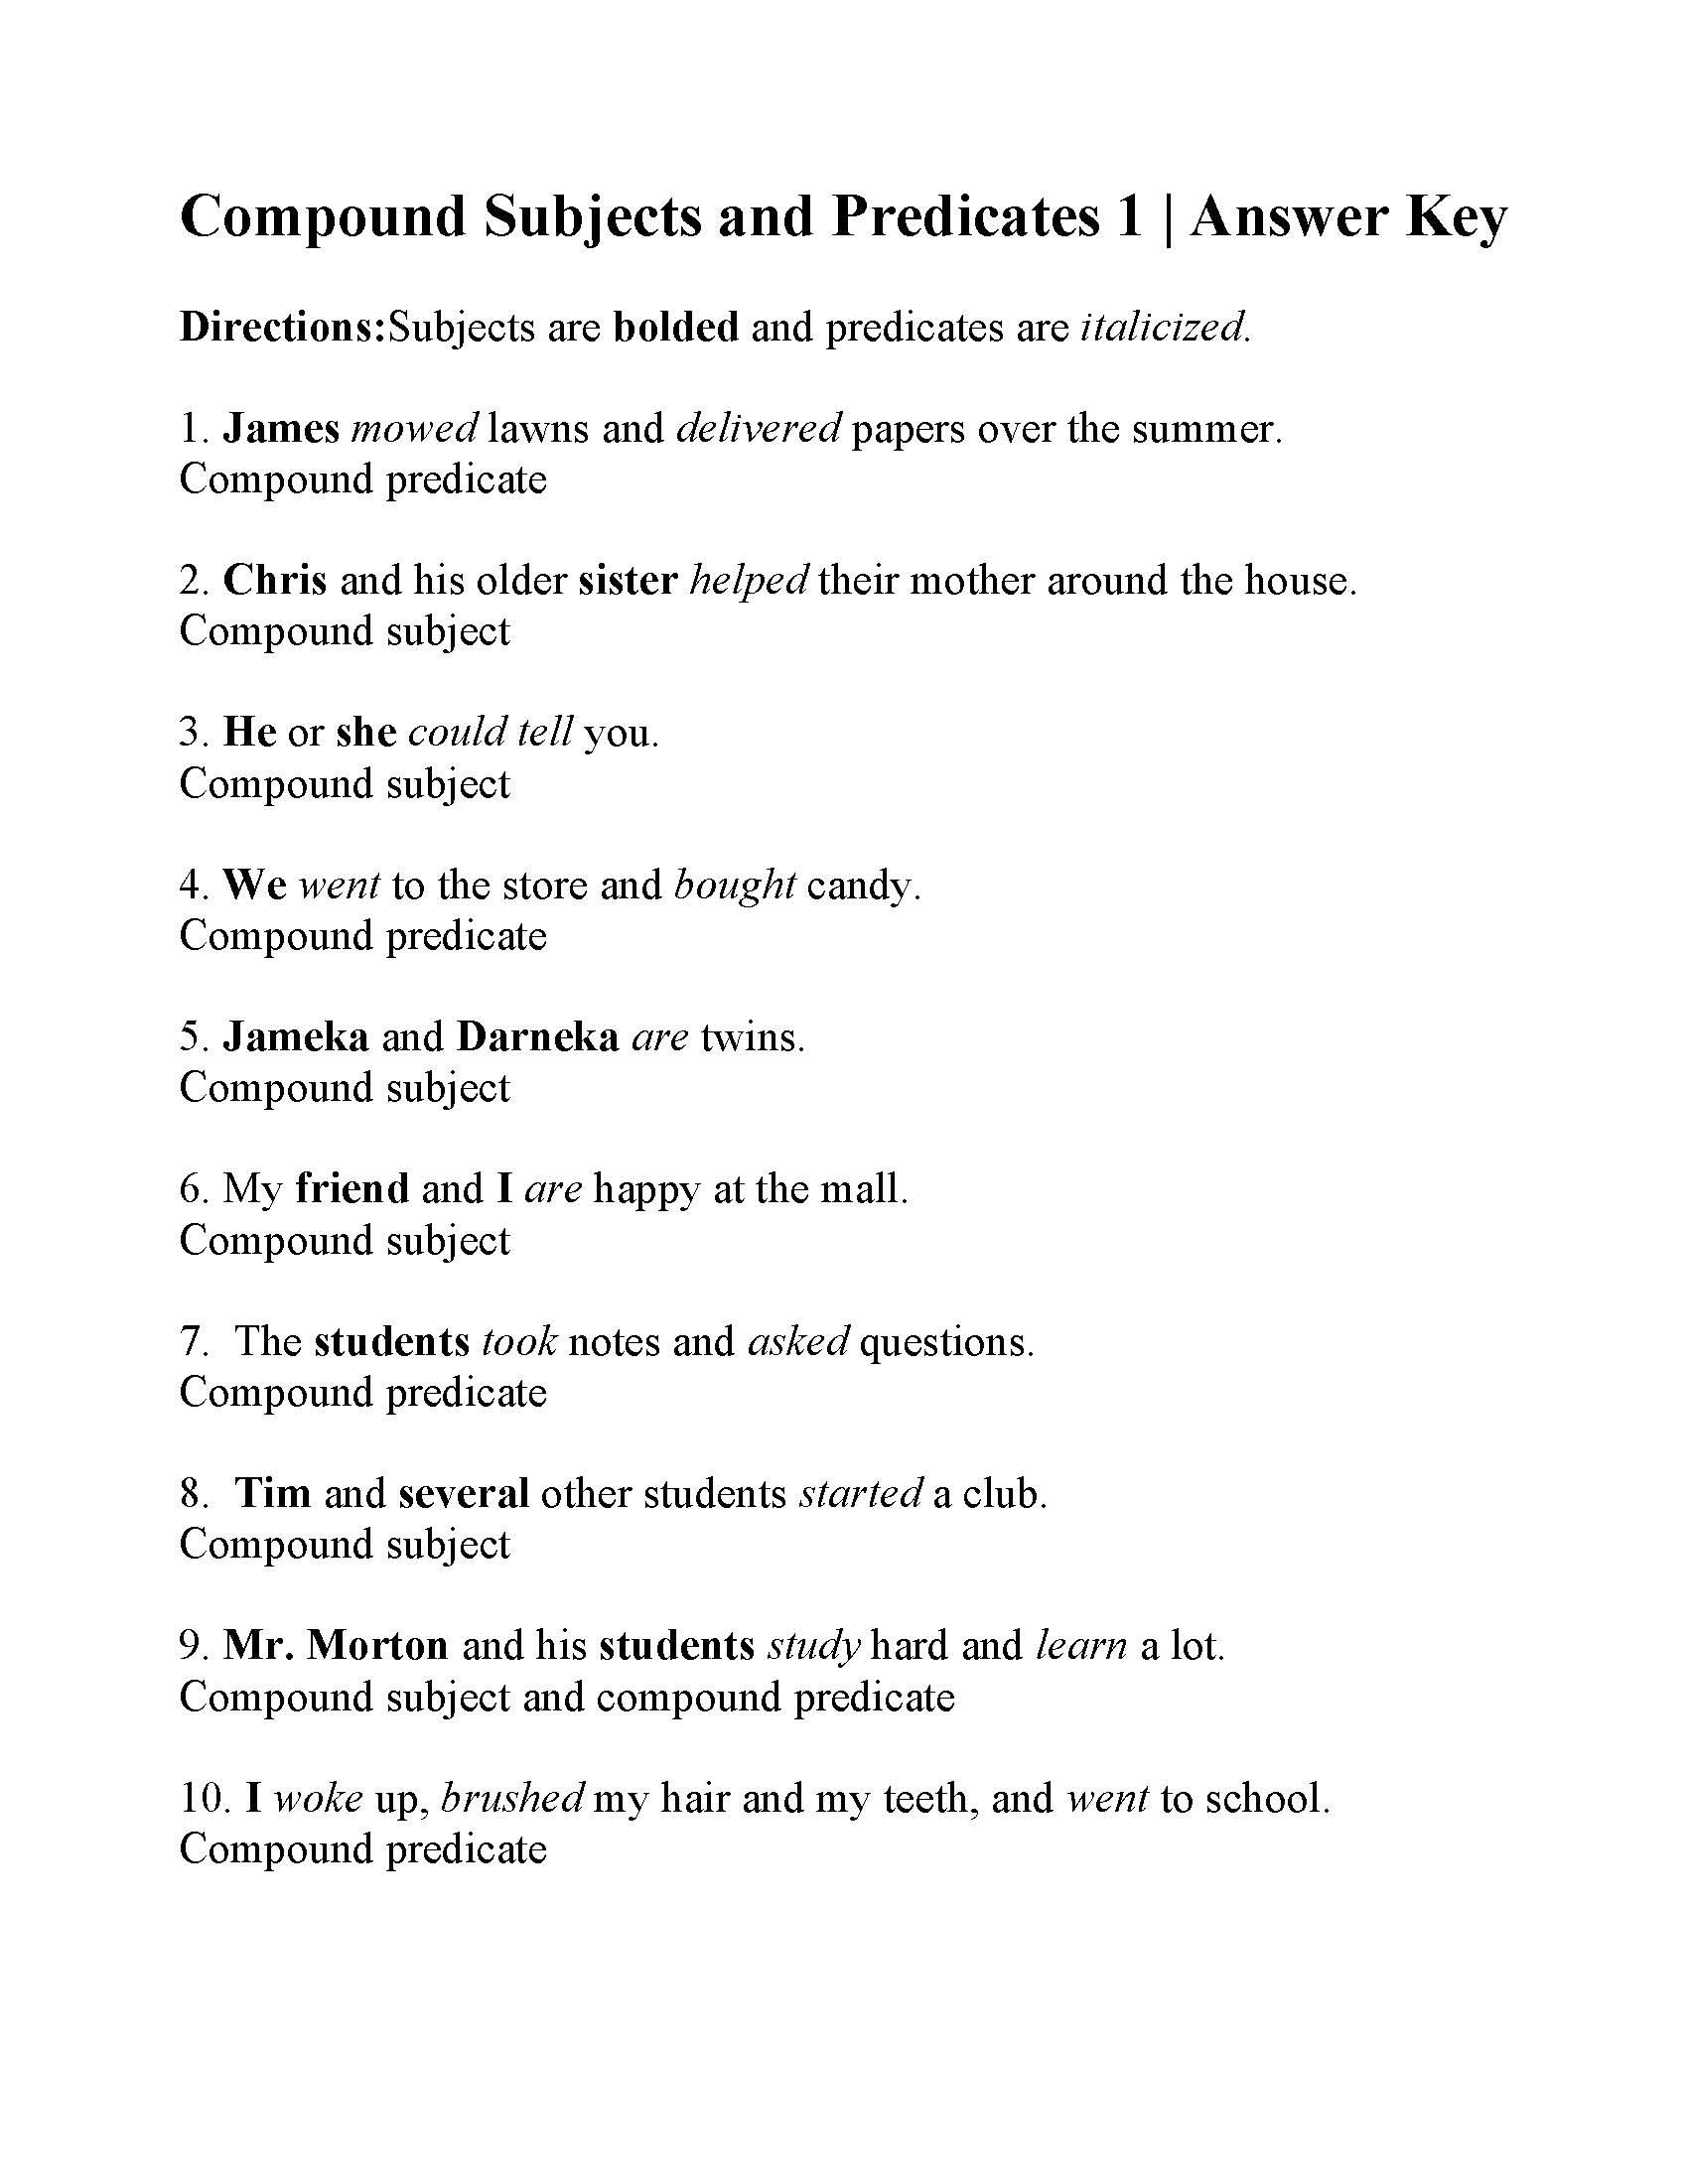 Free Subject and Predicate Worksheets Pound Subjects and Predicates Worksheet